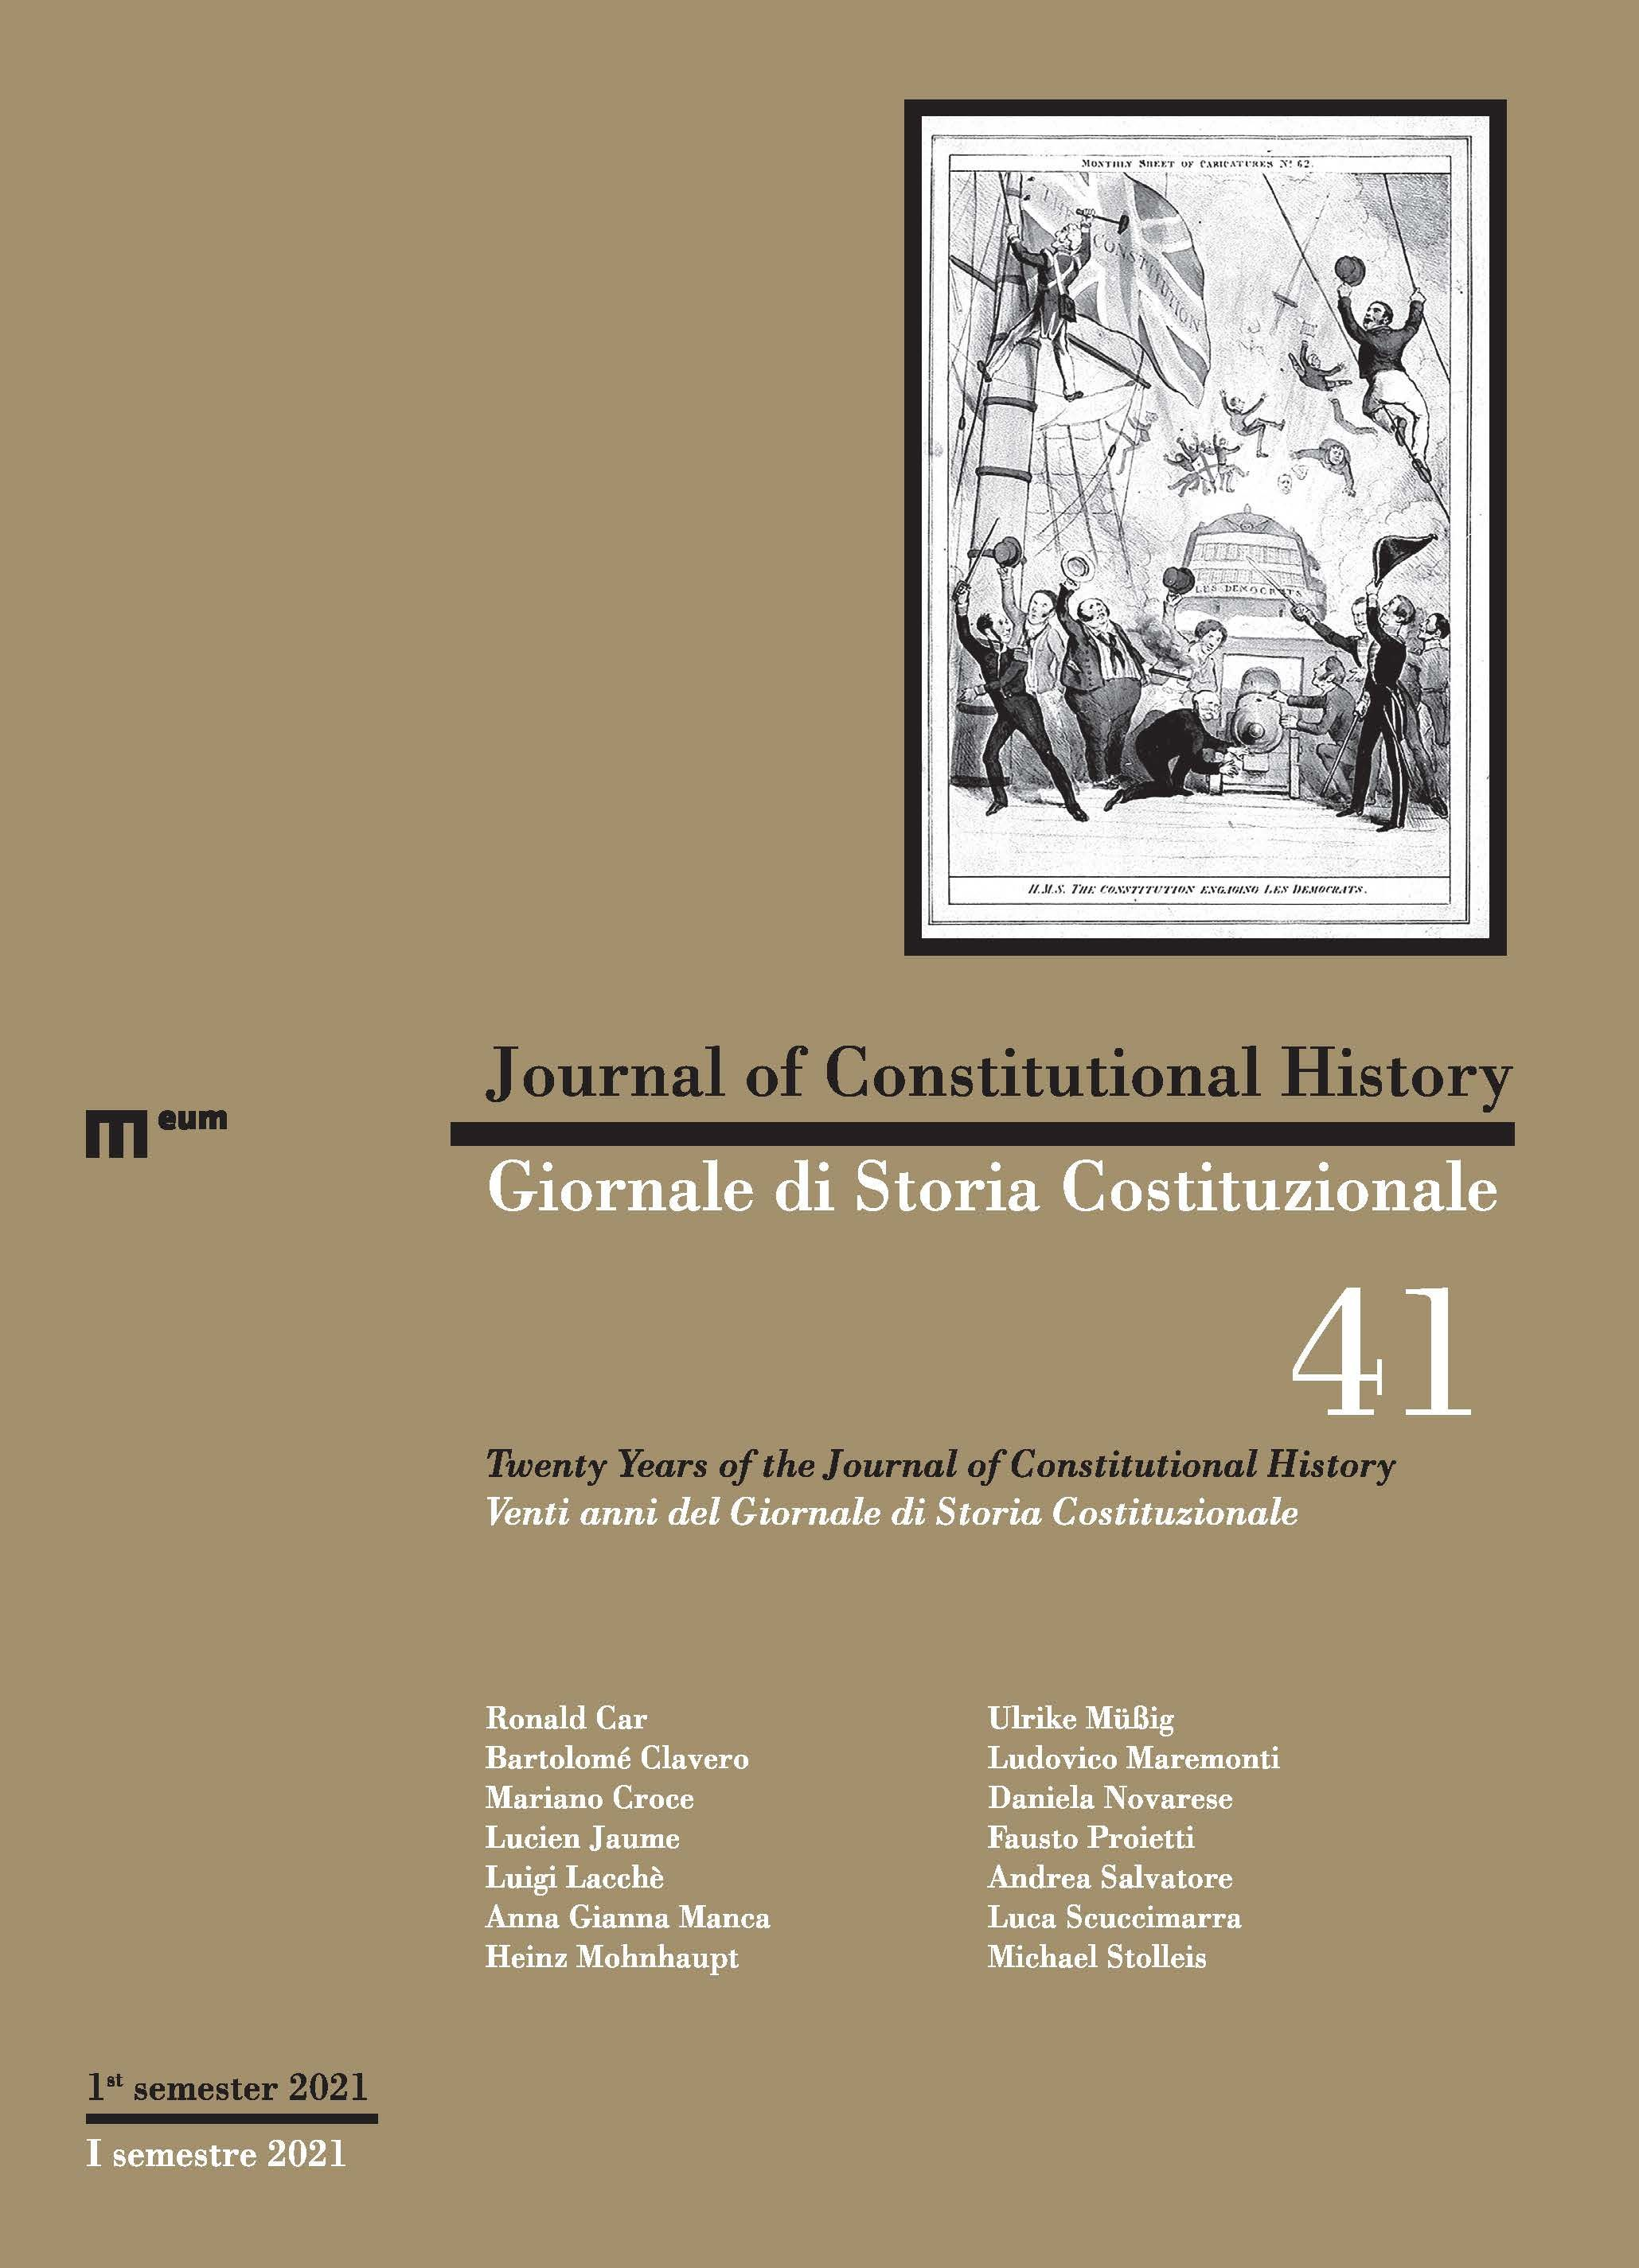 Journal of Constitutional History / Giornale di Storia Costituzionale n. 41, 1/2021